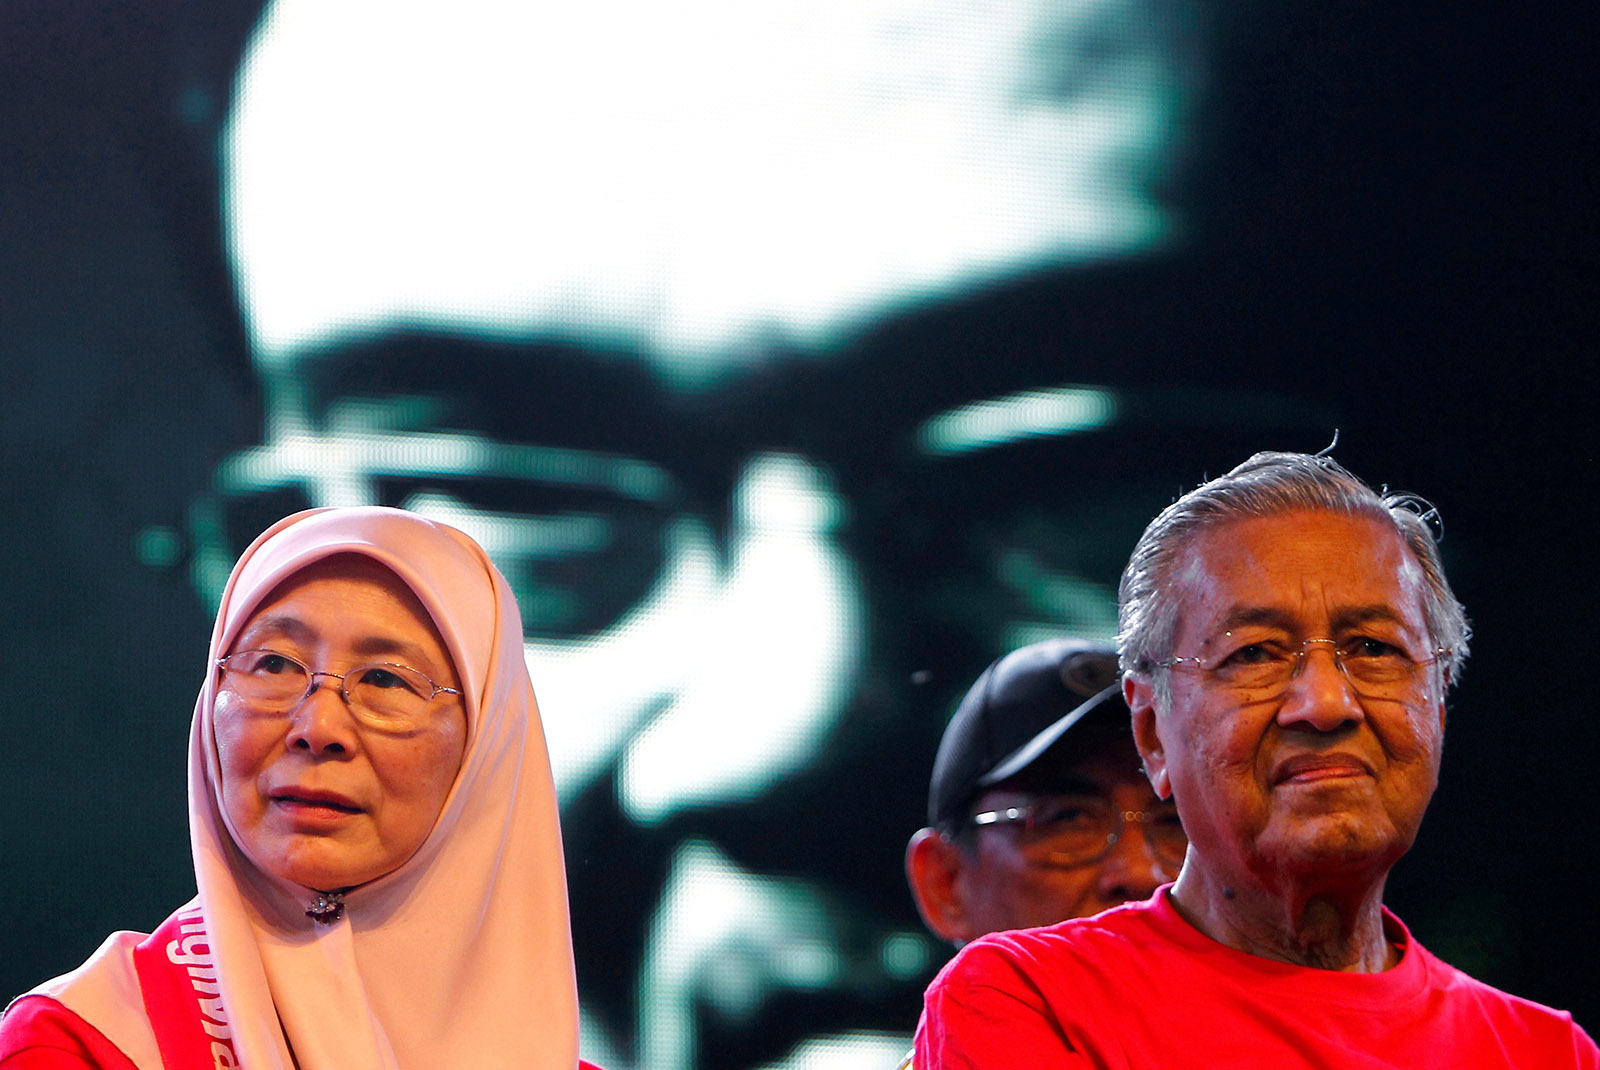 A video clip of the then jailed opposition leader Anwar Ibrahim playing in the background at an anticorruption rally with Anwar's wife, Wan Azizah, and Anwar's one-time nemesis but now political ally, Malaysia's former prime minister, Dr. Mahathir Mohamad, in Petaling Jaya, Malaysia, October 14, 2017